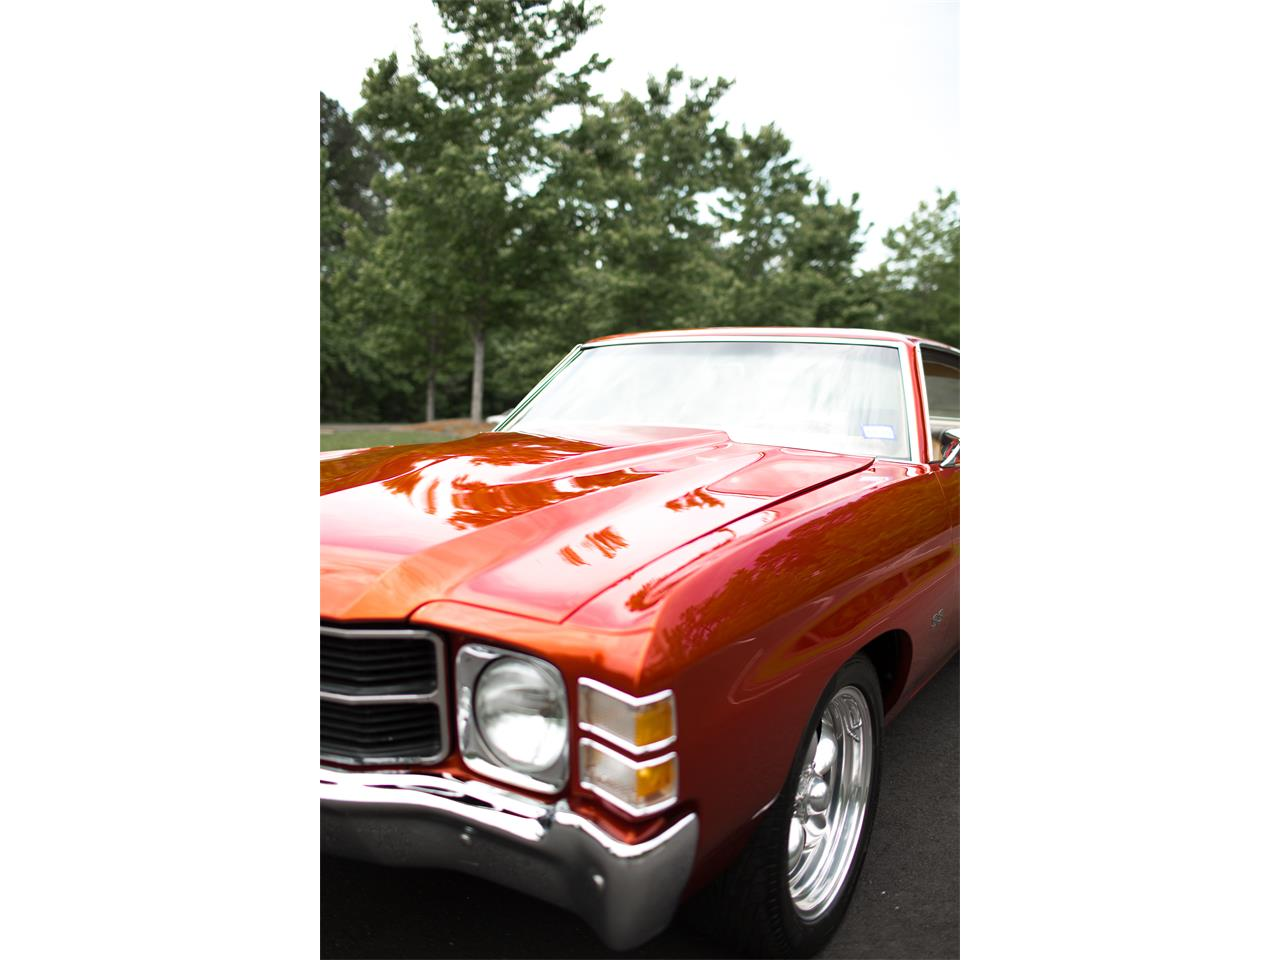 Large Picture of Classic 1971 Chevrolet Chevelle SS - $36,000.00 Offered by a Private Seller - Q0XV